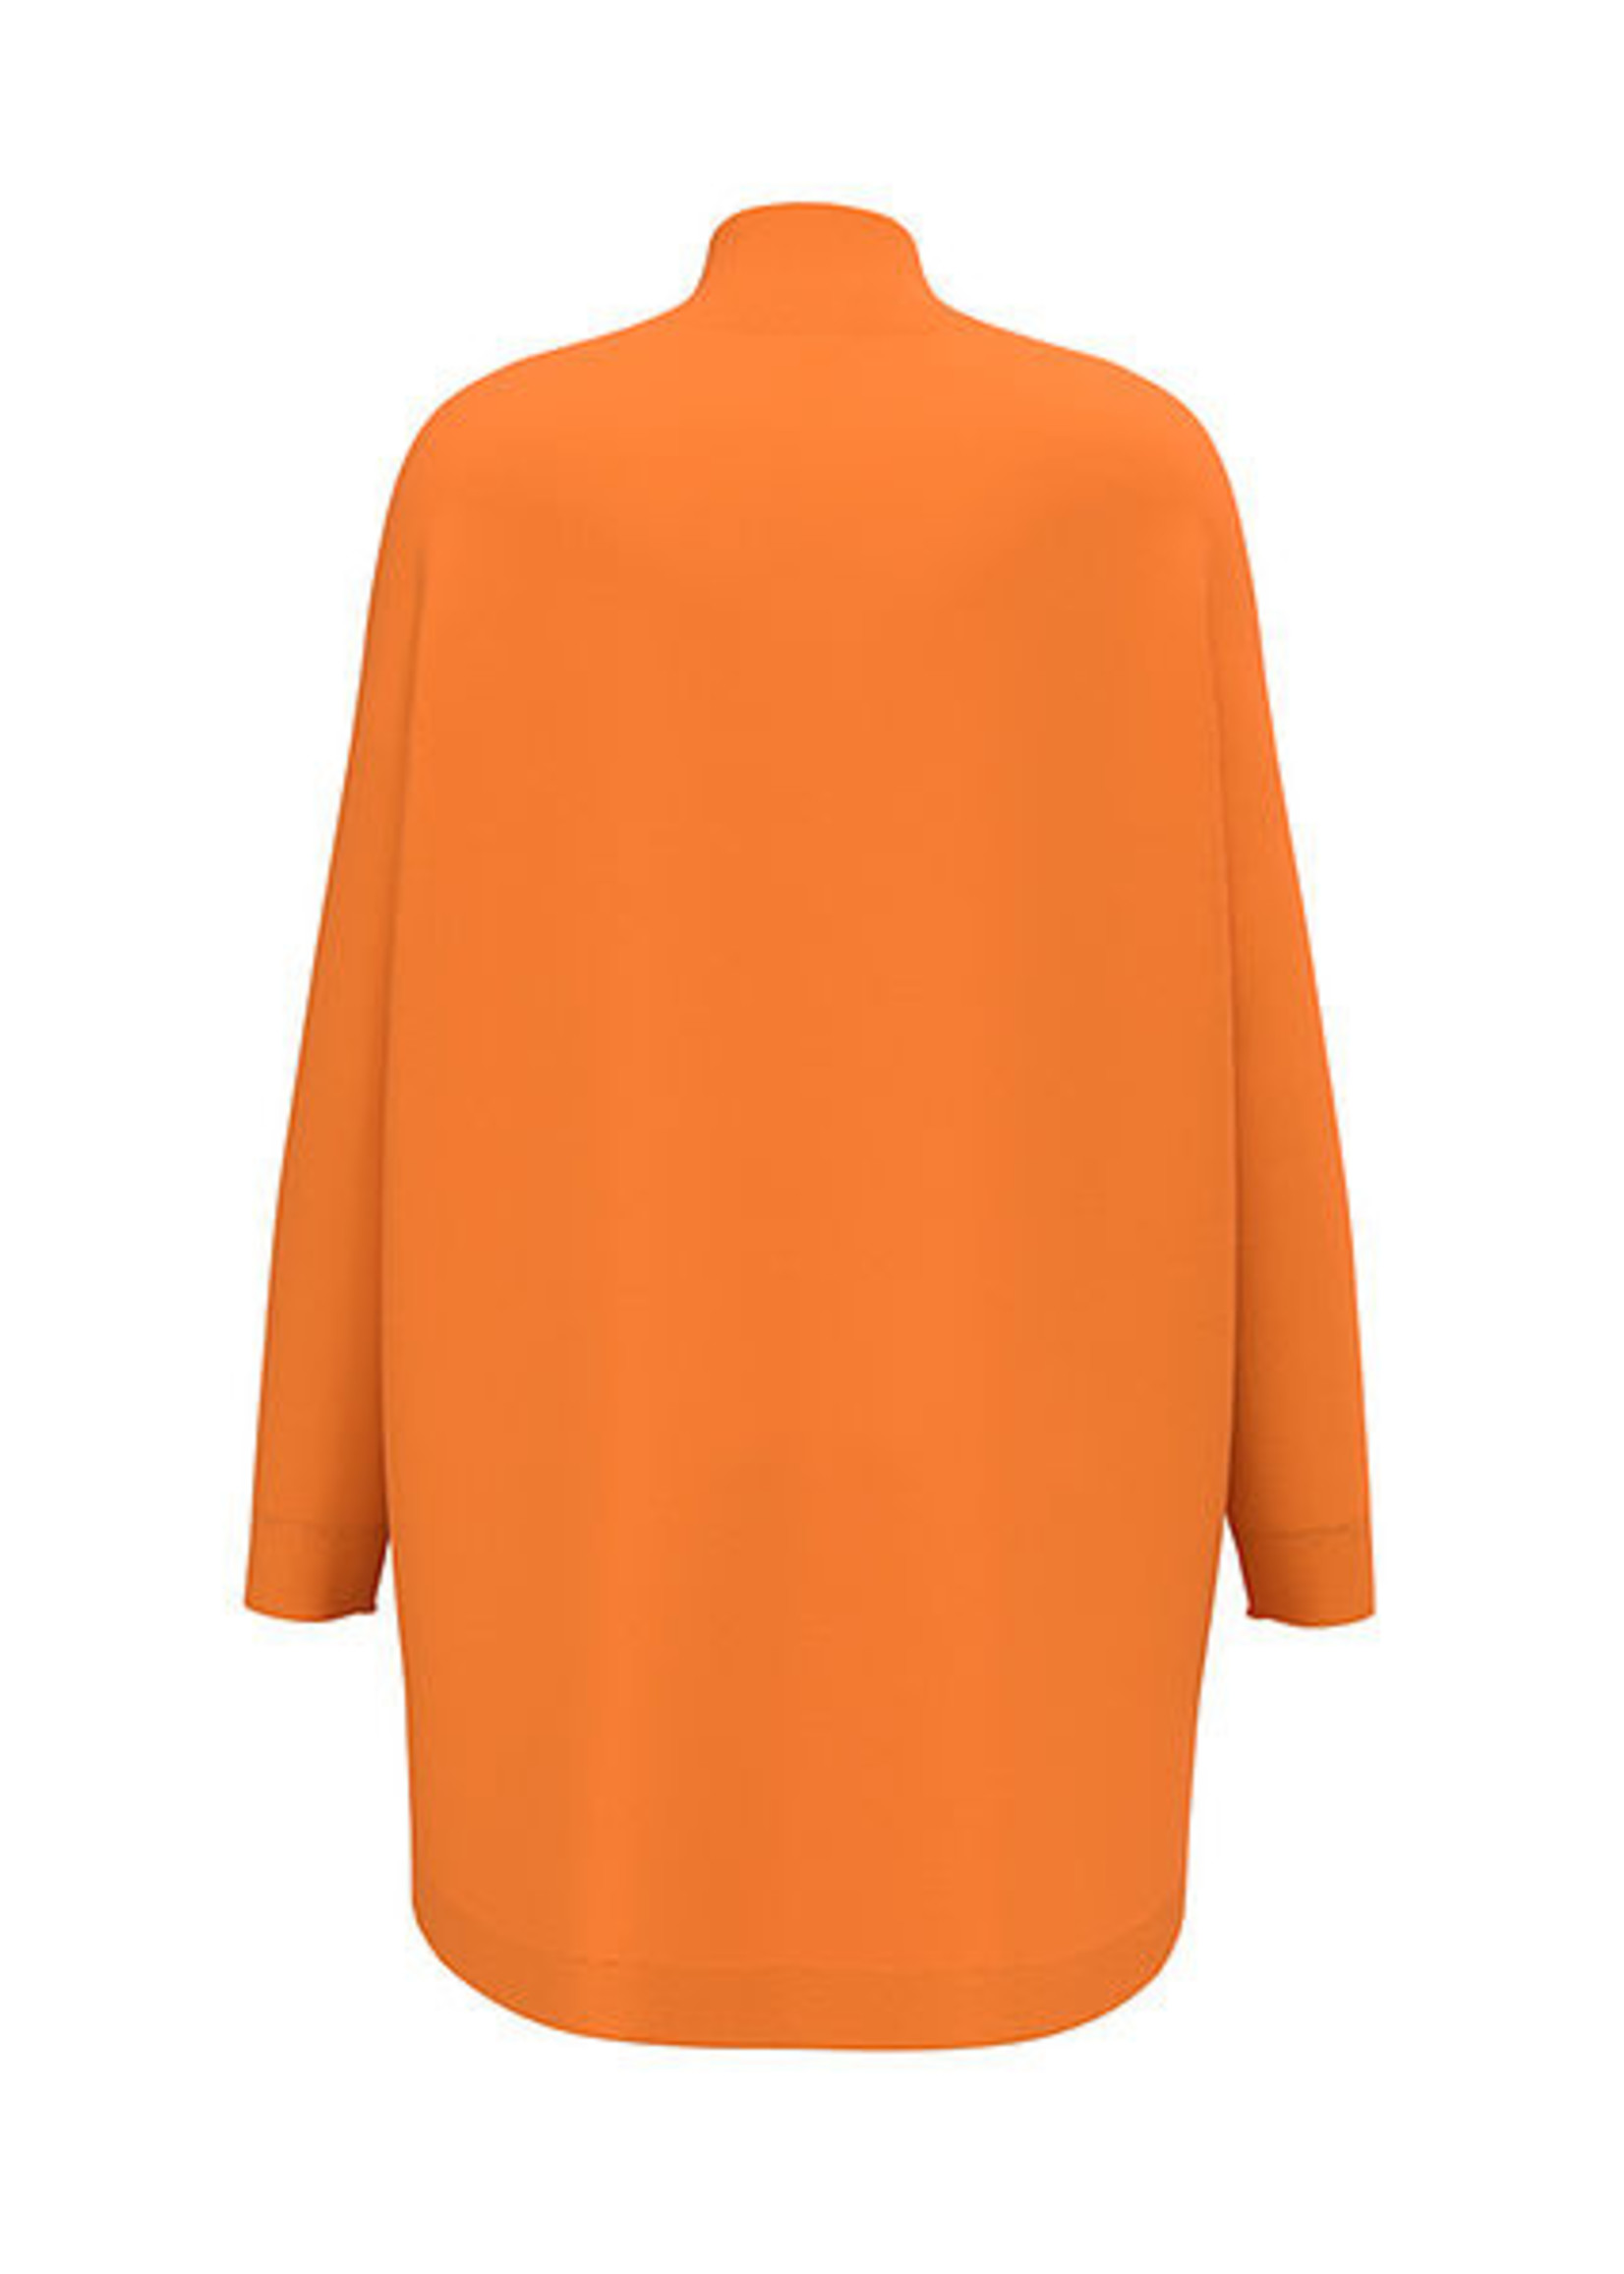 Marccain Sports Sweater RS 41.39 M80 tiger